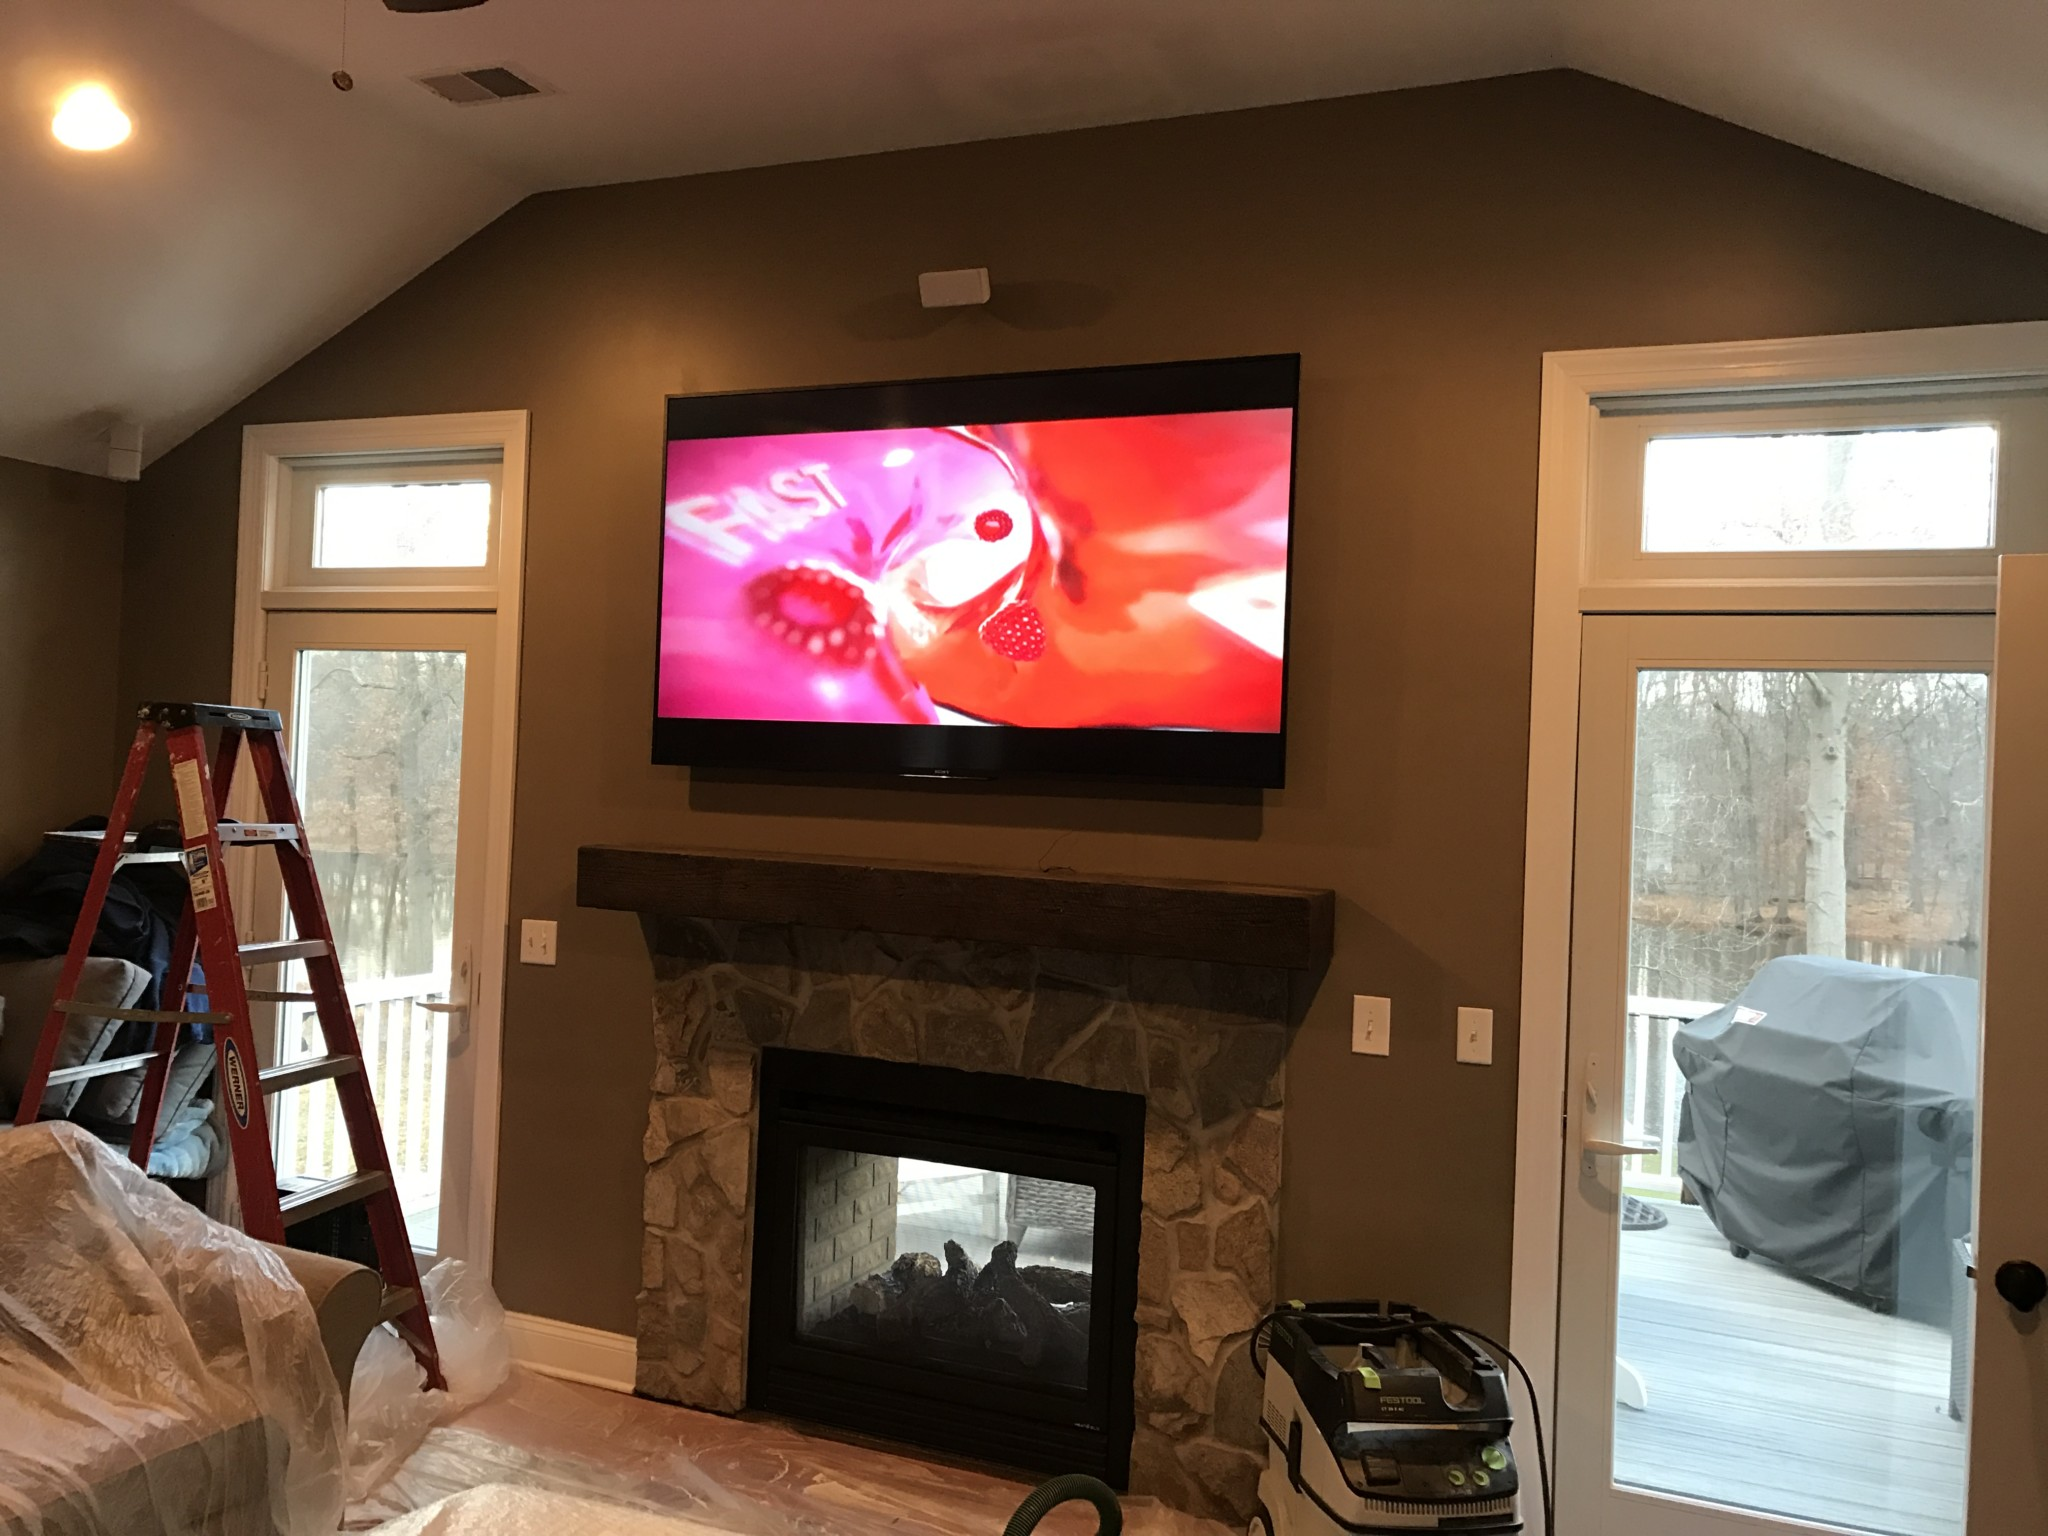 How High To Mount Tv On Wall In Bedroom Flush Mounted Tv With Tile To Ceiling Tv Fireplace T